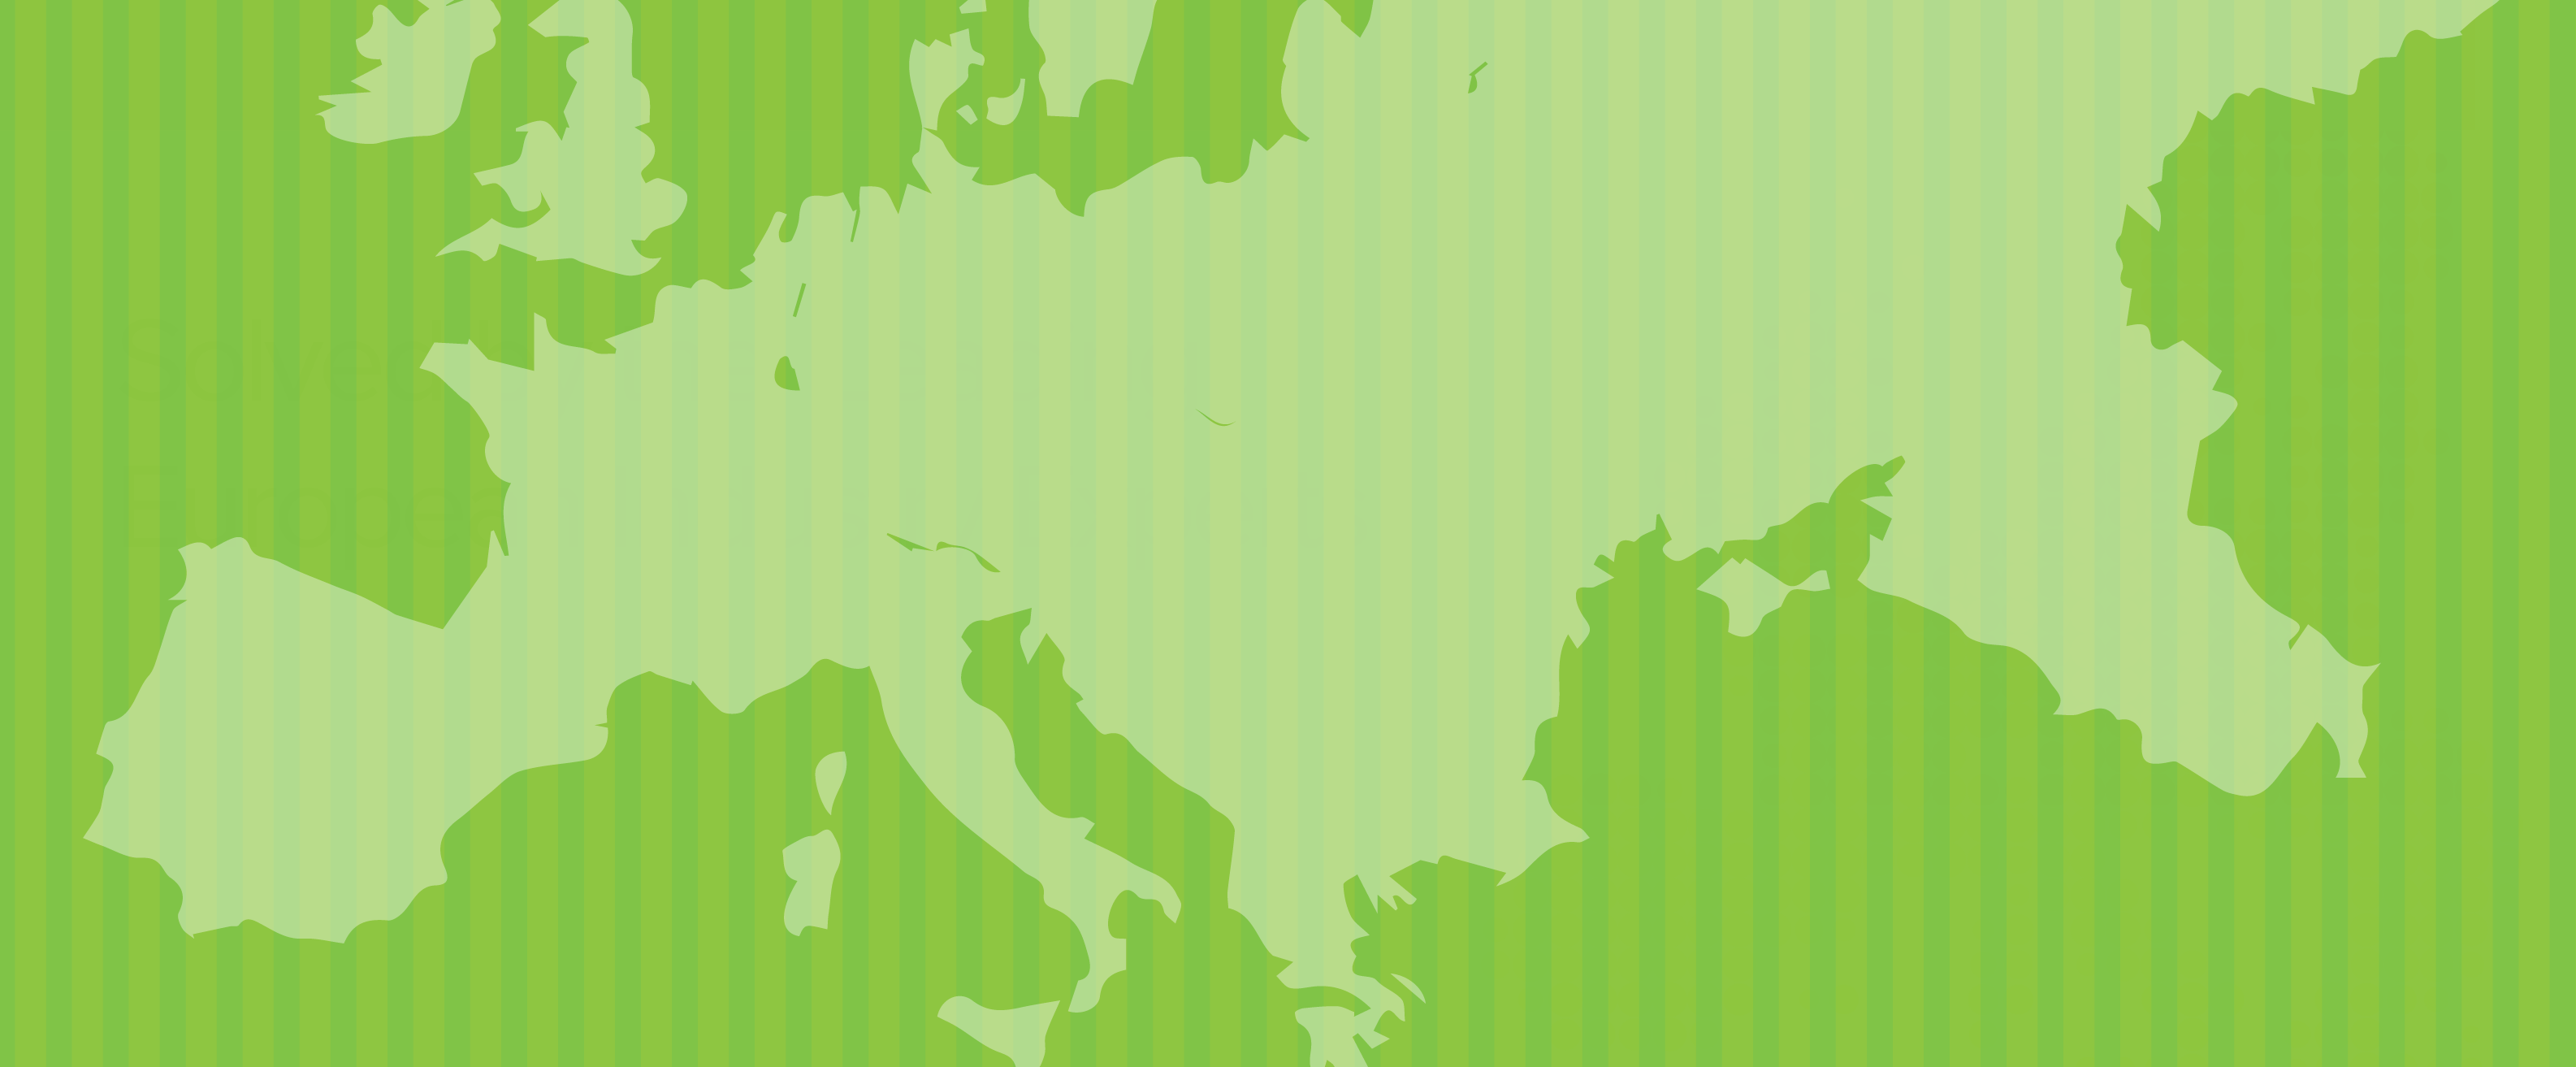 29 Revealing Statistics About Content Marketing in Europe [SlideShare]